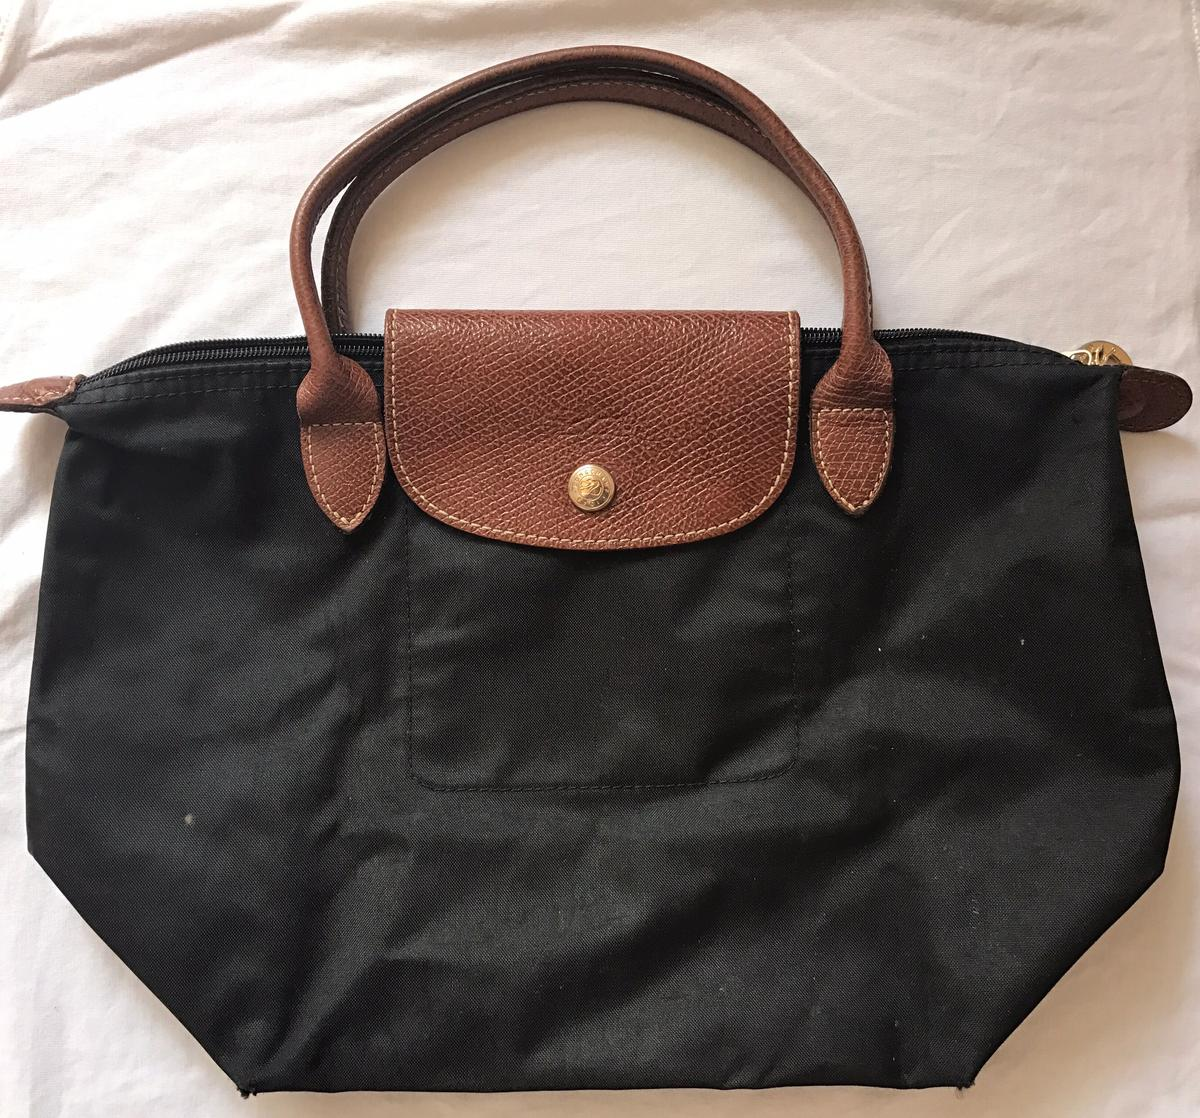 Longchamp 1948 Tasche in 80807 München for €20.00 for sale